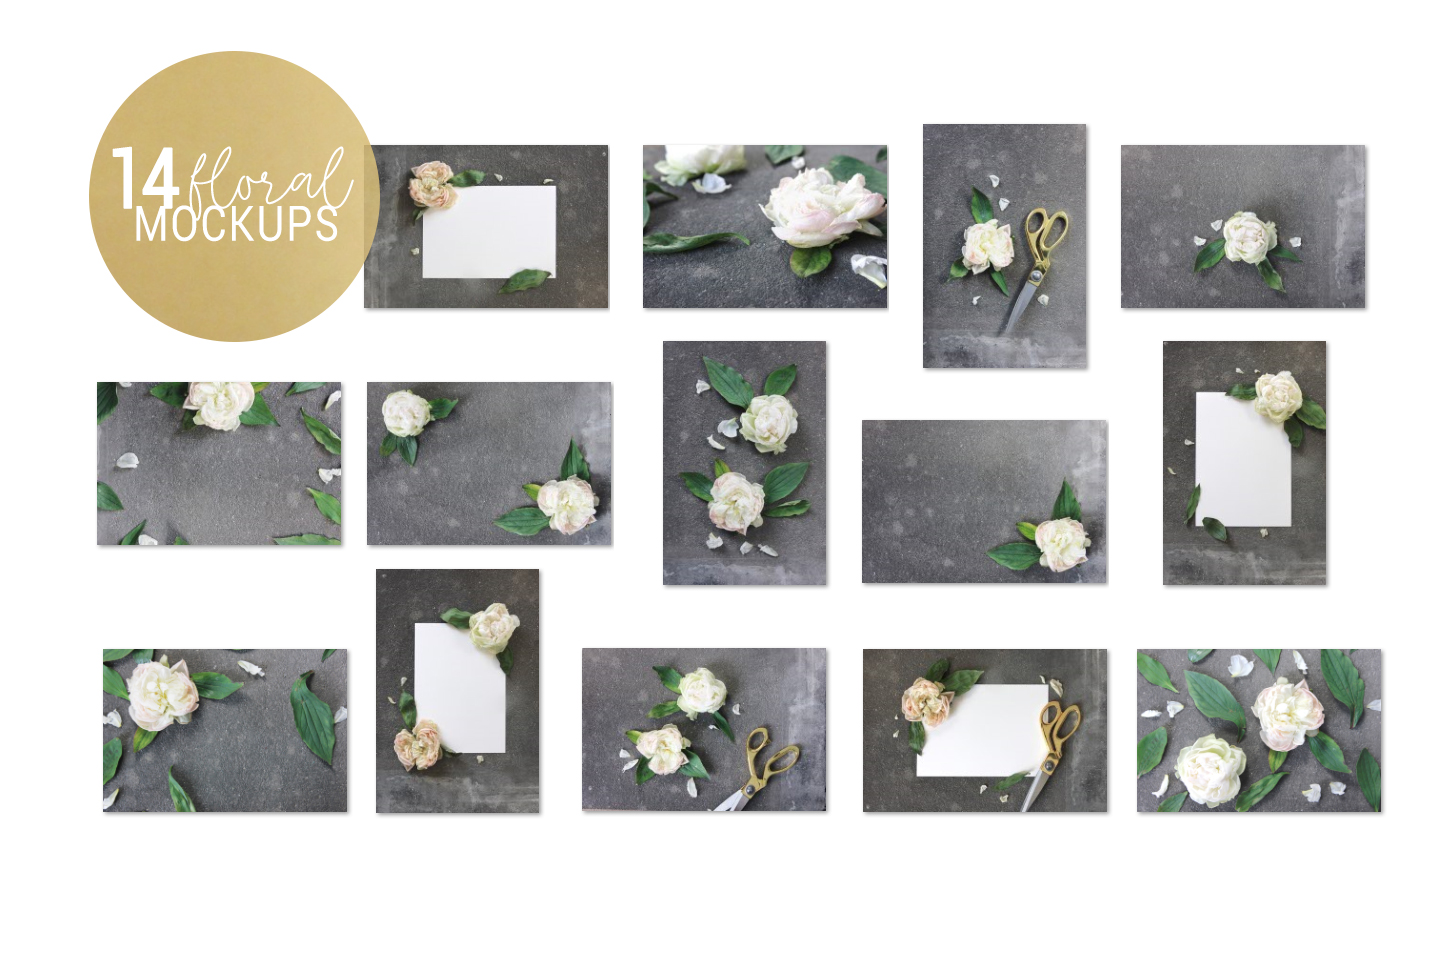 White & gray floral mockup, flower stock images example image 5